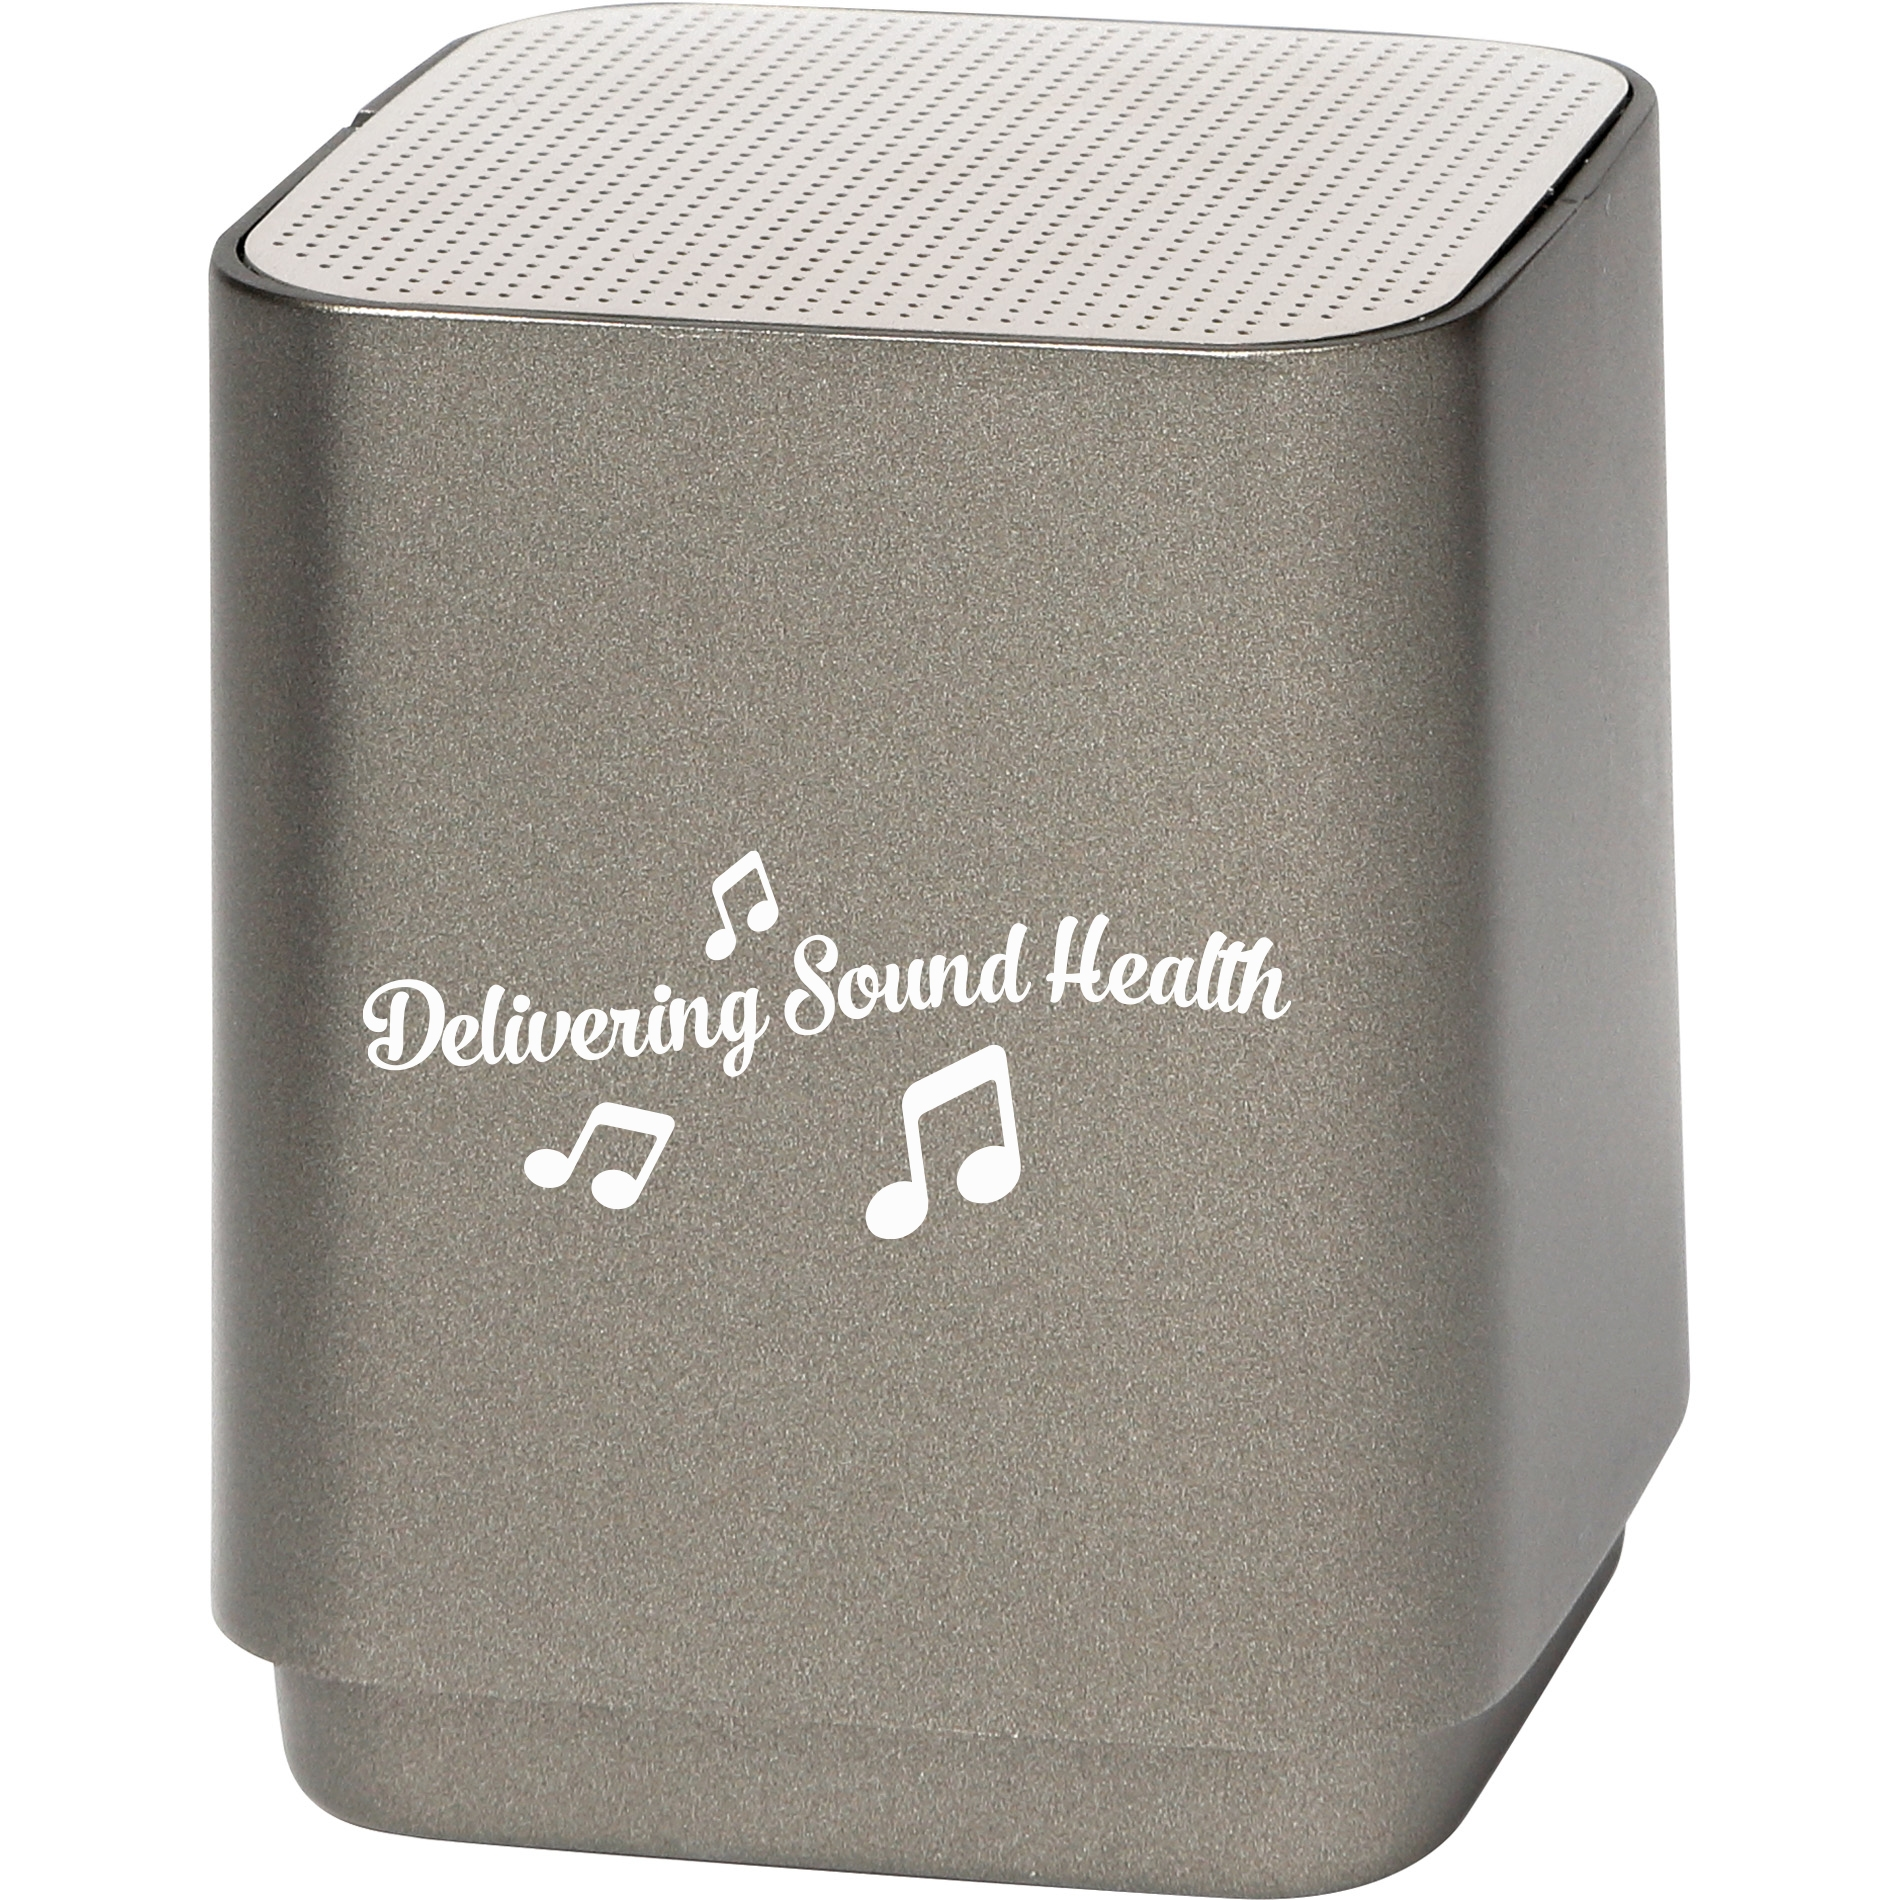 Bluetooth speaker with fun saying for nurses appreciation week